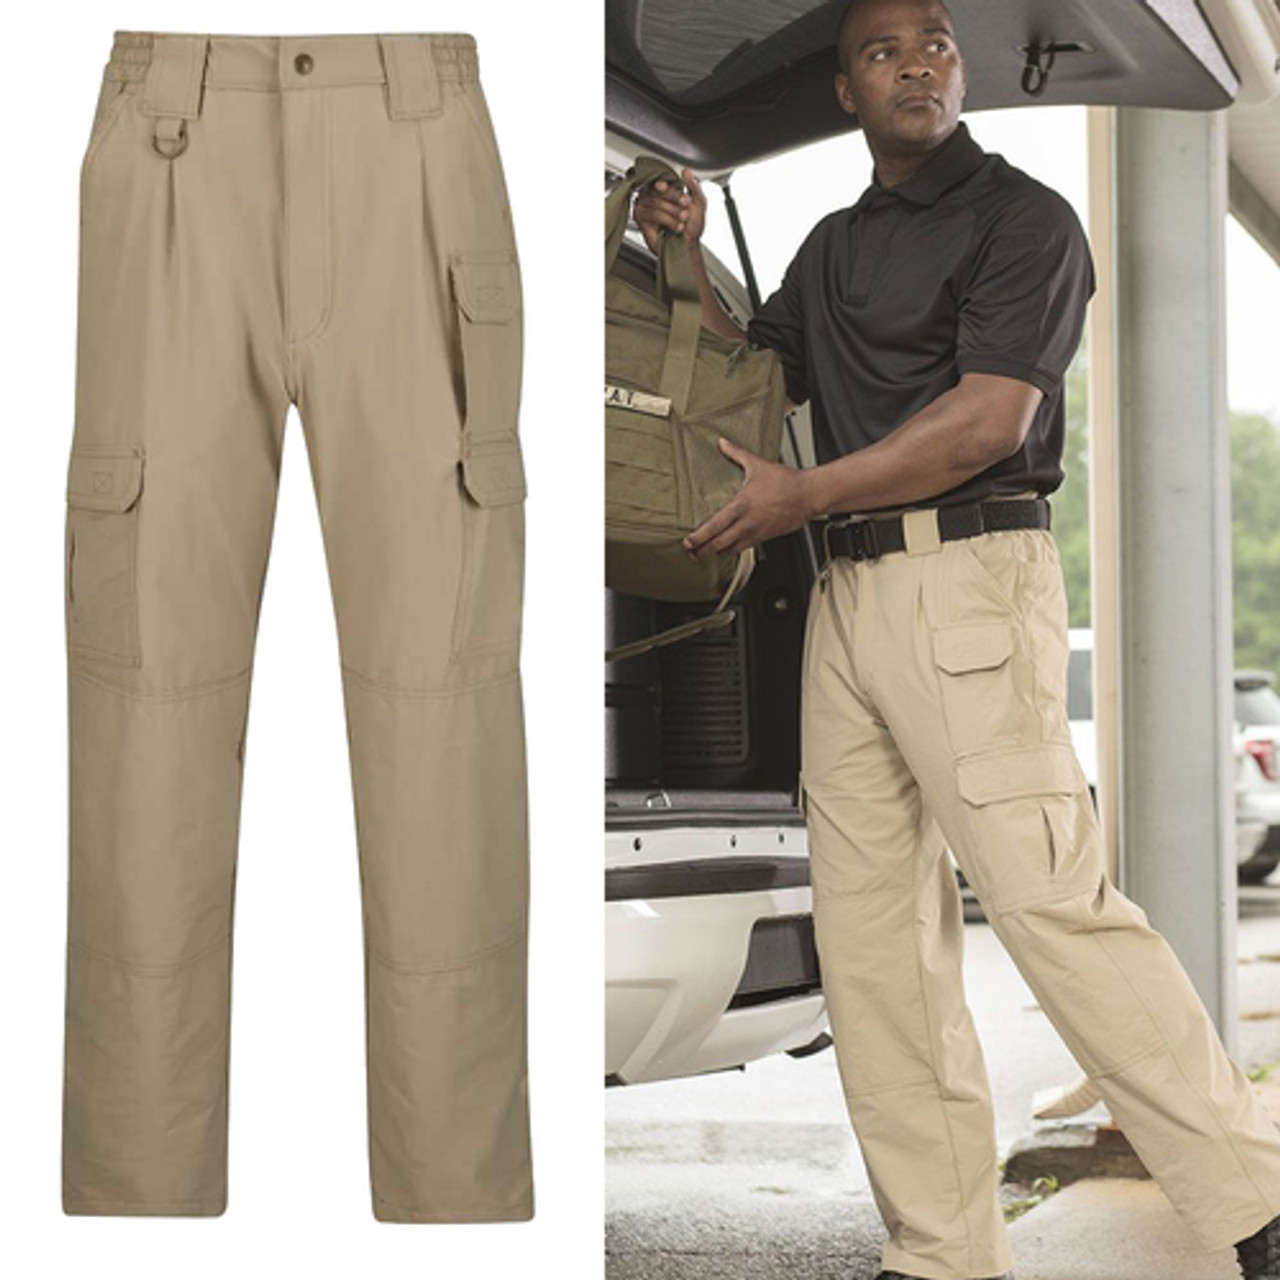 93f0746386145 Propper F52522Y Men's Stretch Tactical Pants, Nylon/Spandex micro ripstop  with Teflon fabric protector